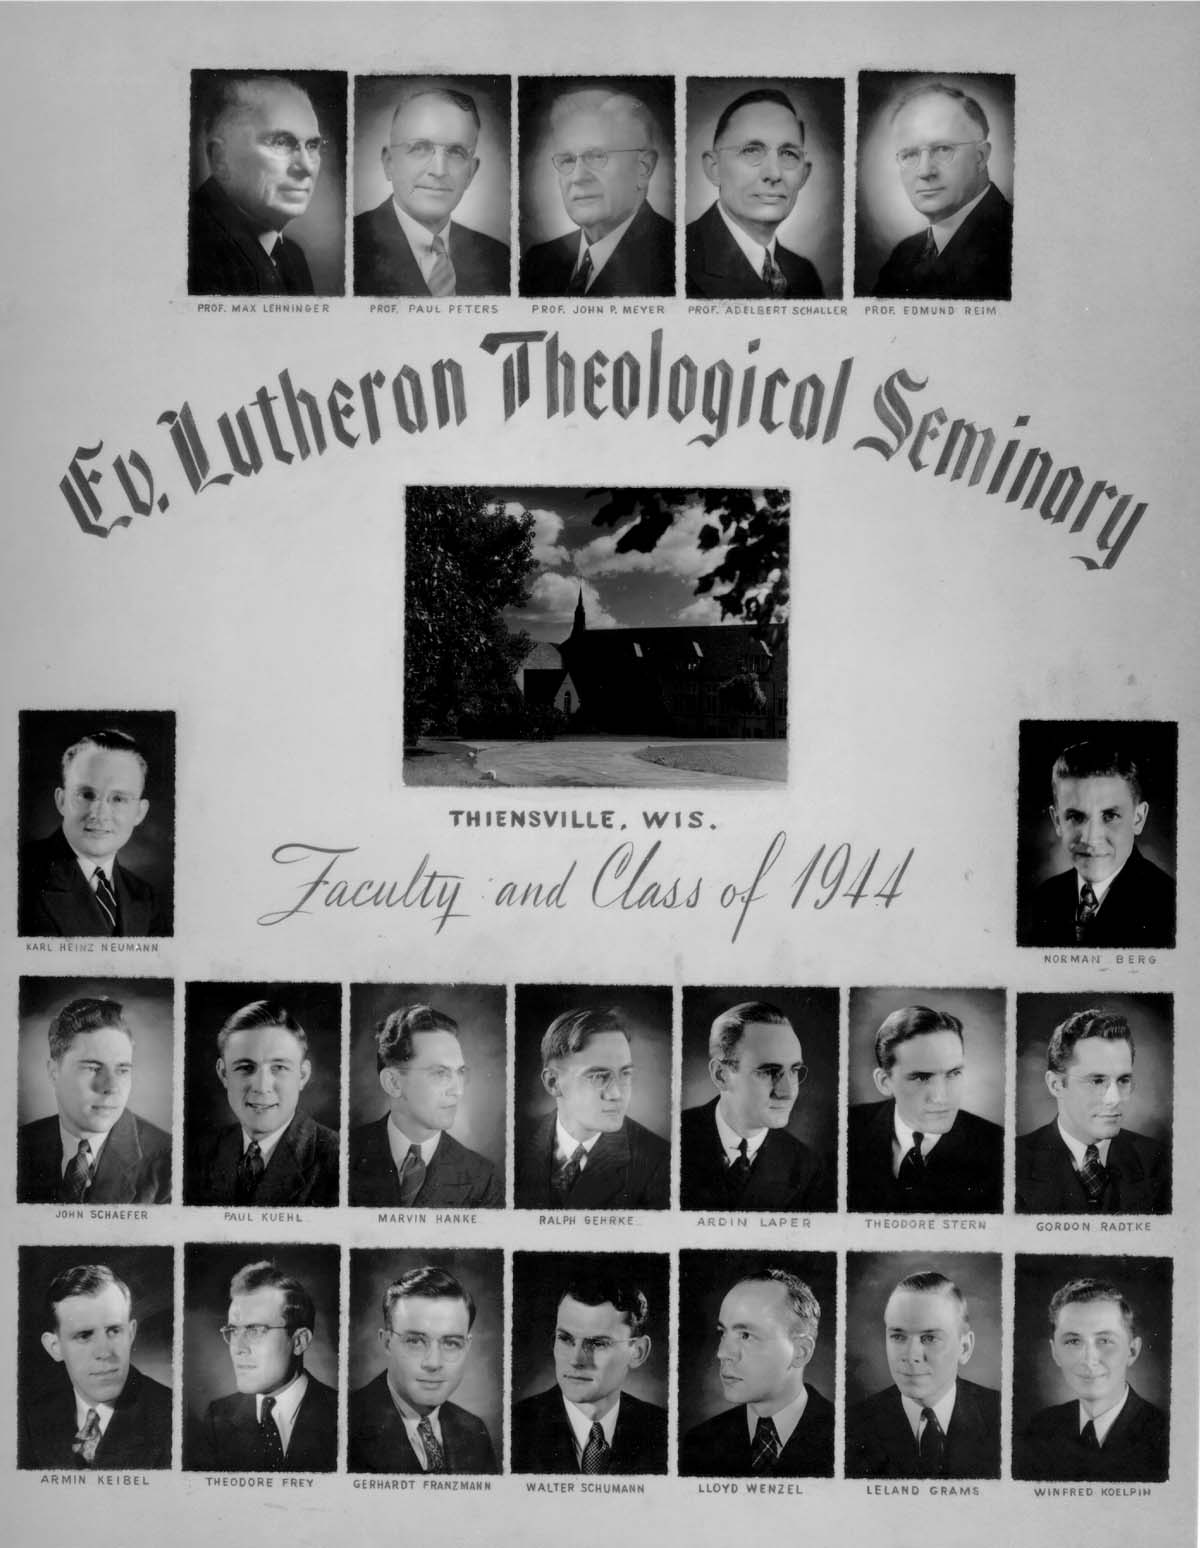 wels seminary essay file Joining the freemasons  you can read papers at the wisconsin lutheran seminary essay file from the 1930s and 1940s that express our concern about the masons .